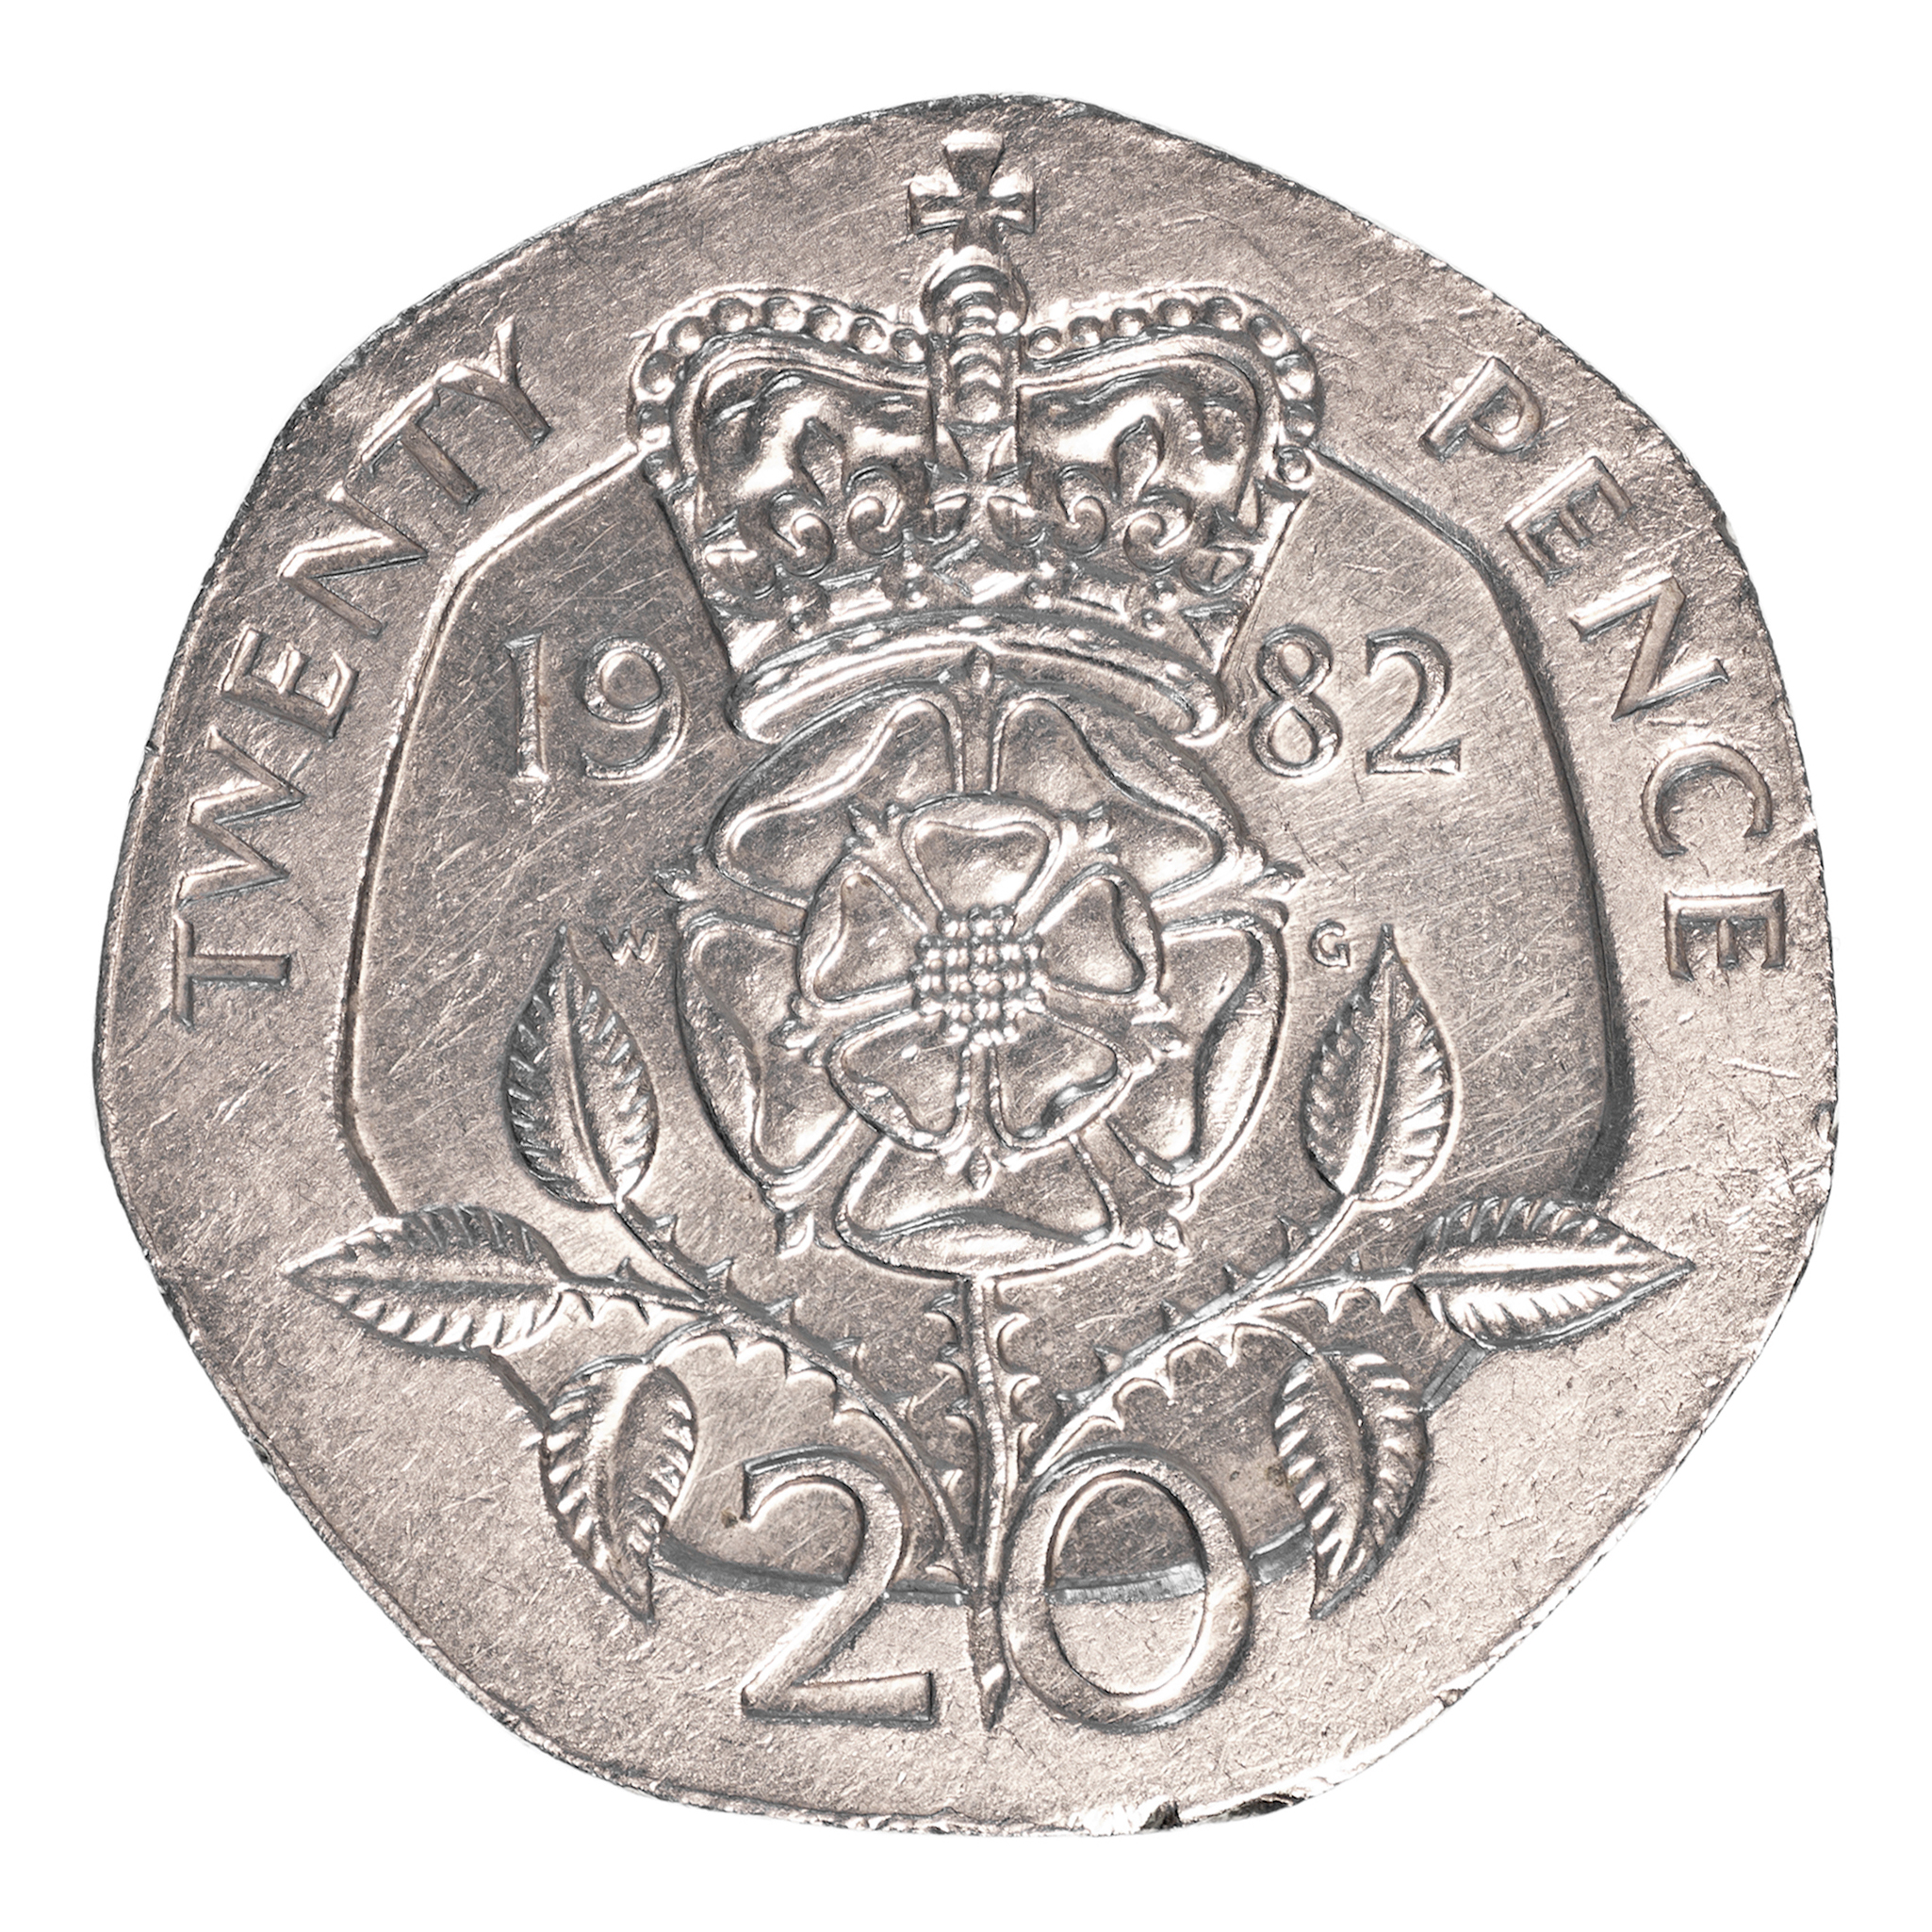 Have You Got One? These Rare 20p Coins Are Worth Up To £100